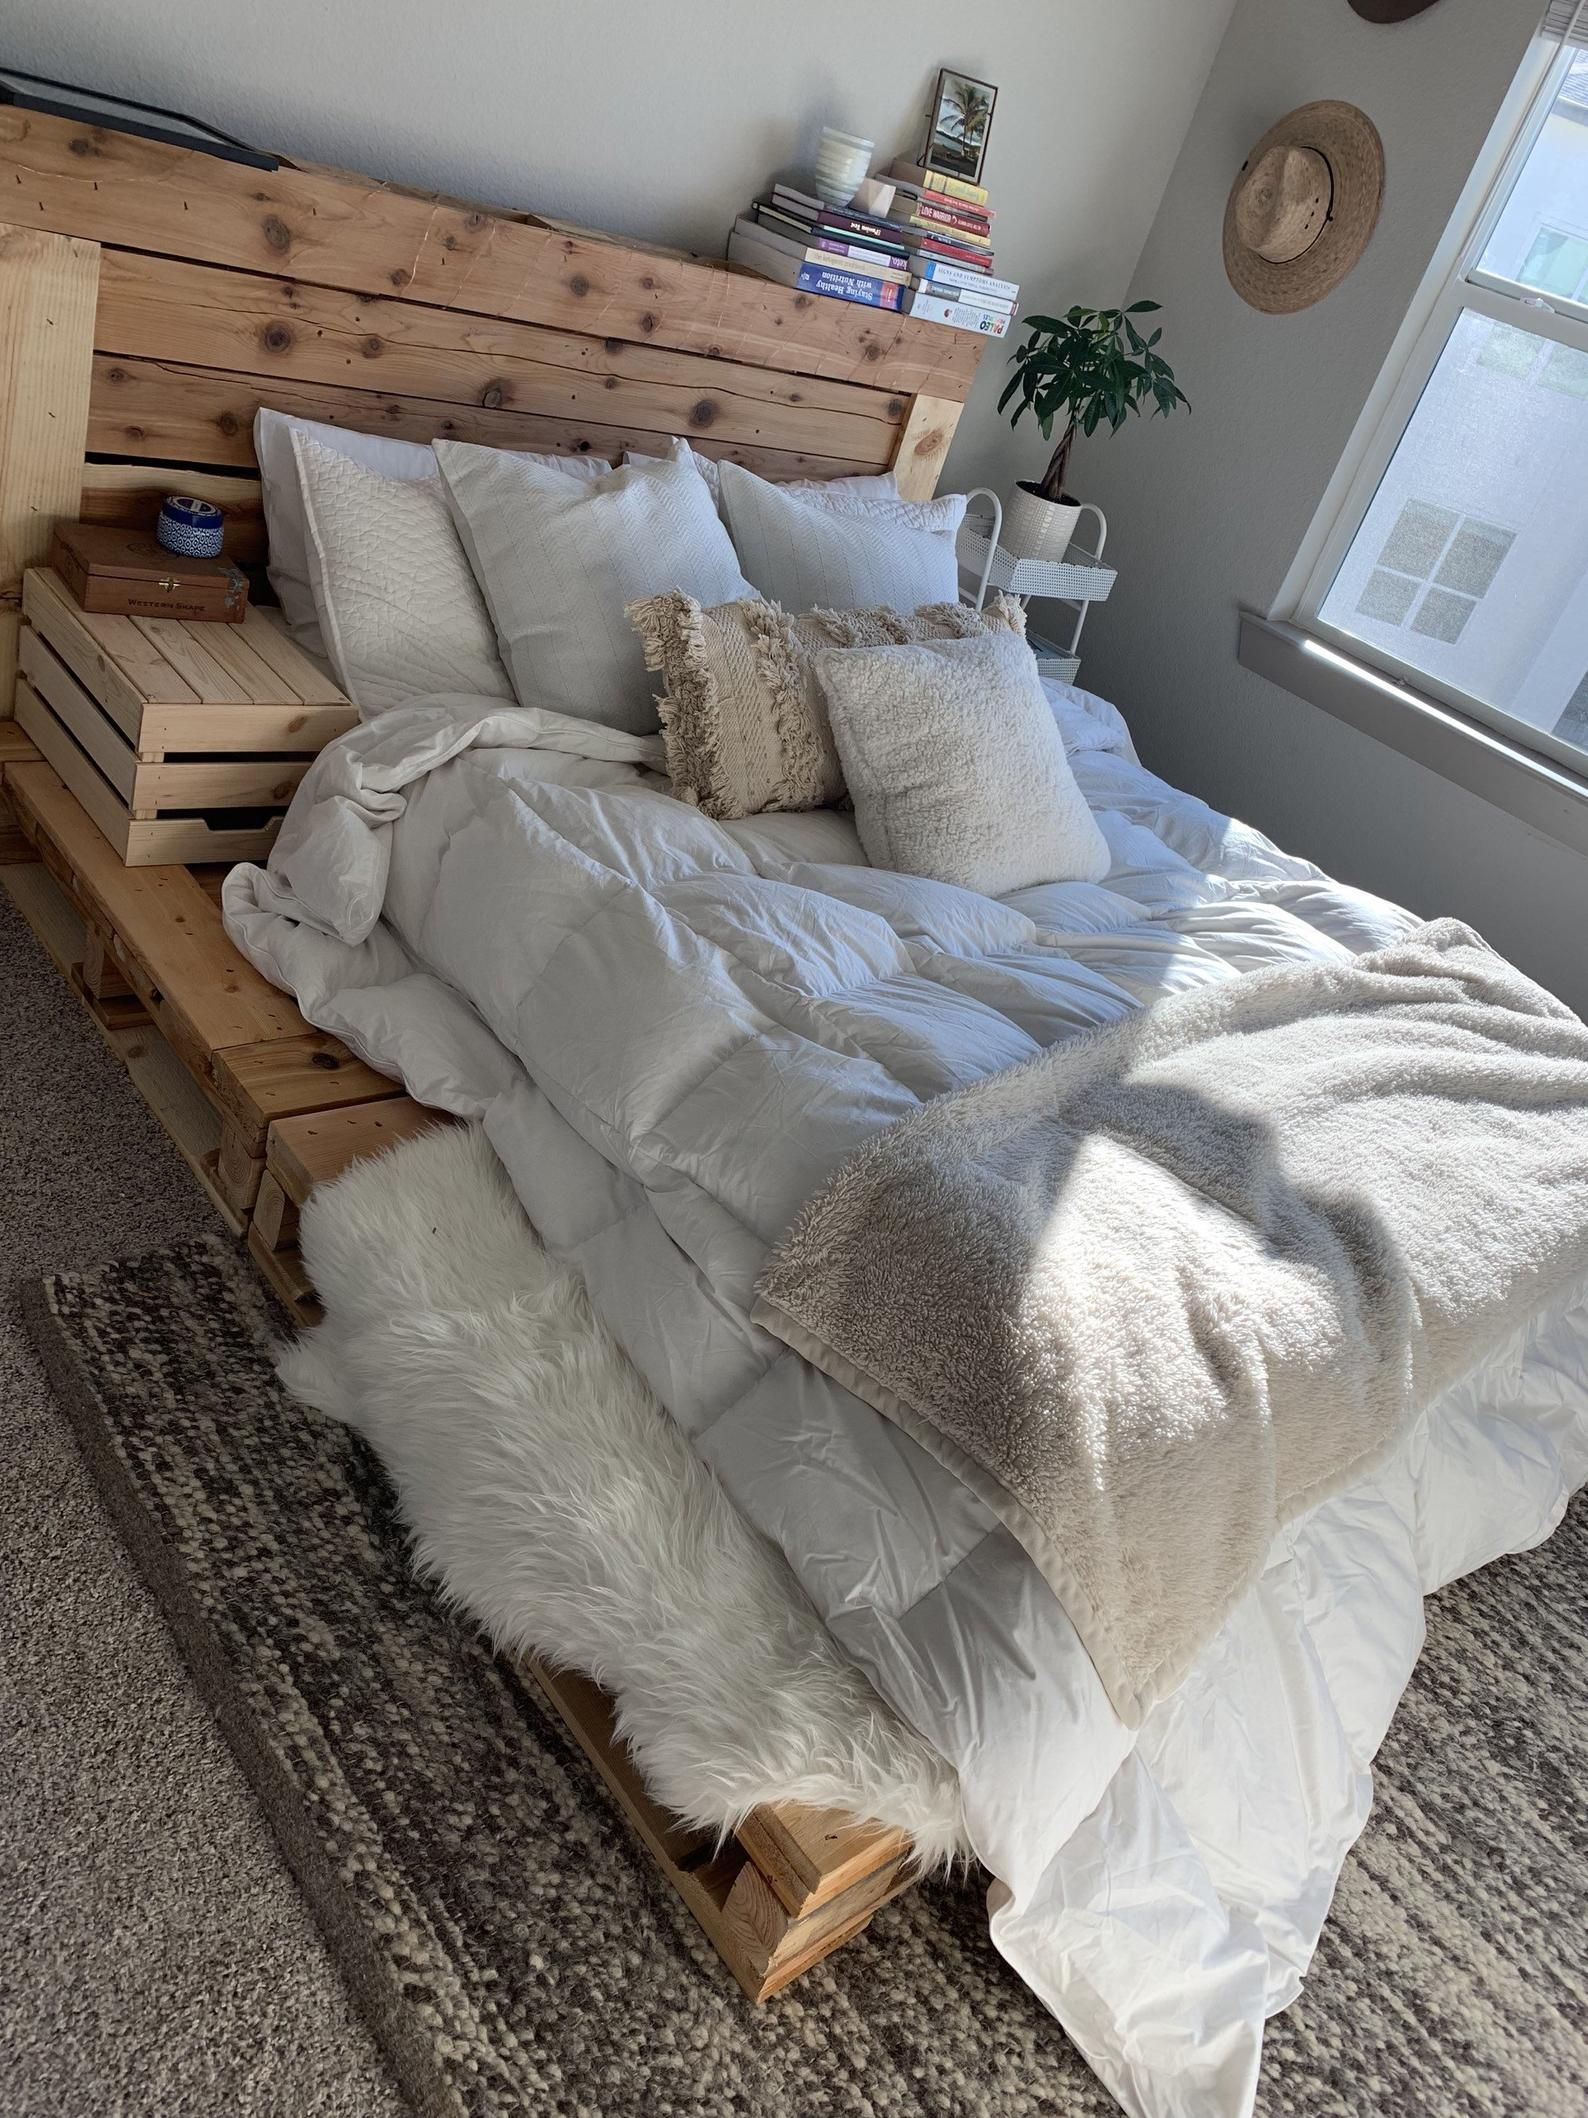 Pallet Bed With Storage Plans Wooden Pallet Beds Pallet Platform Bed Platform Bed With Storage